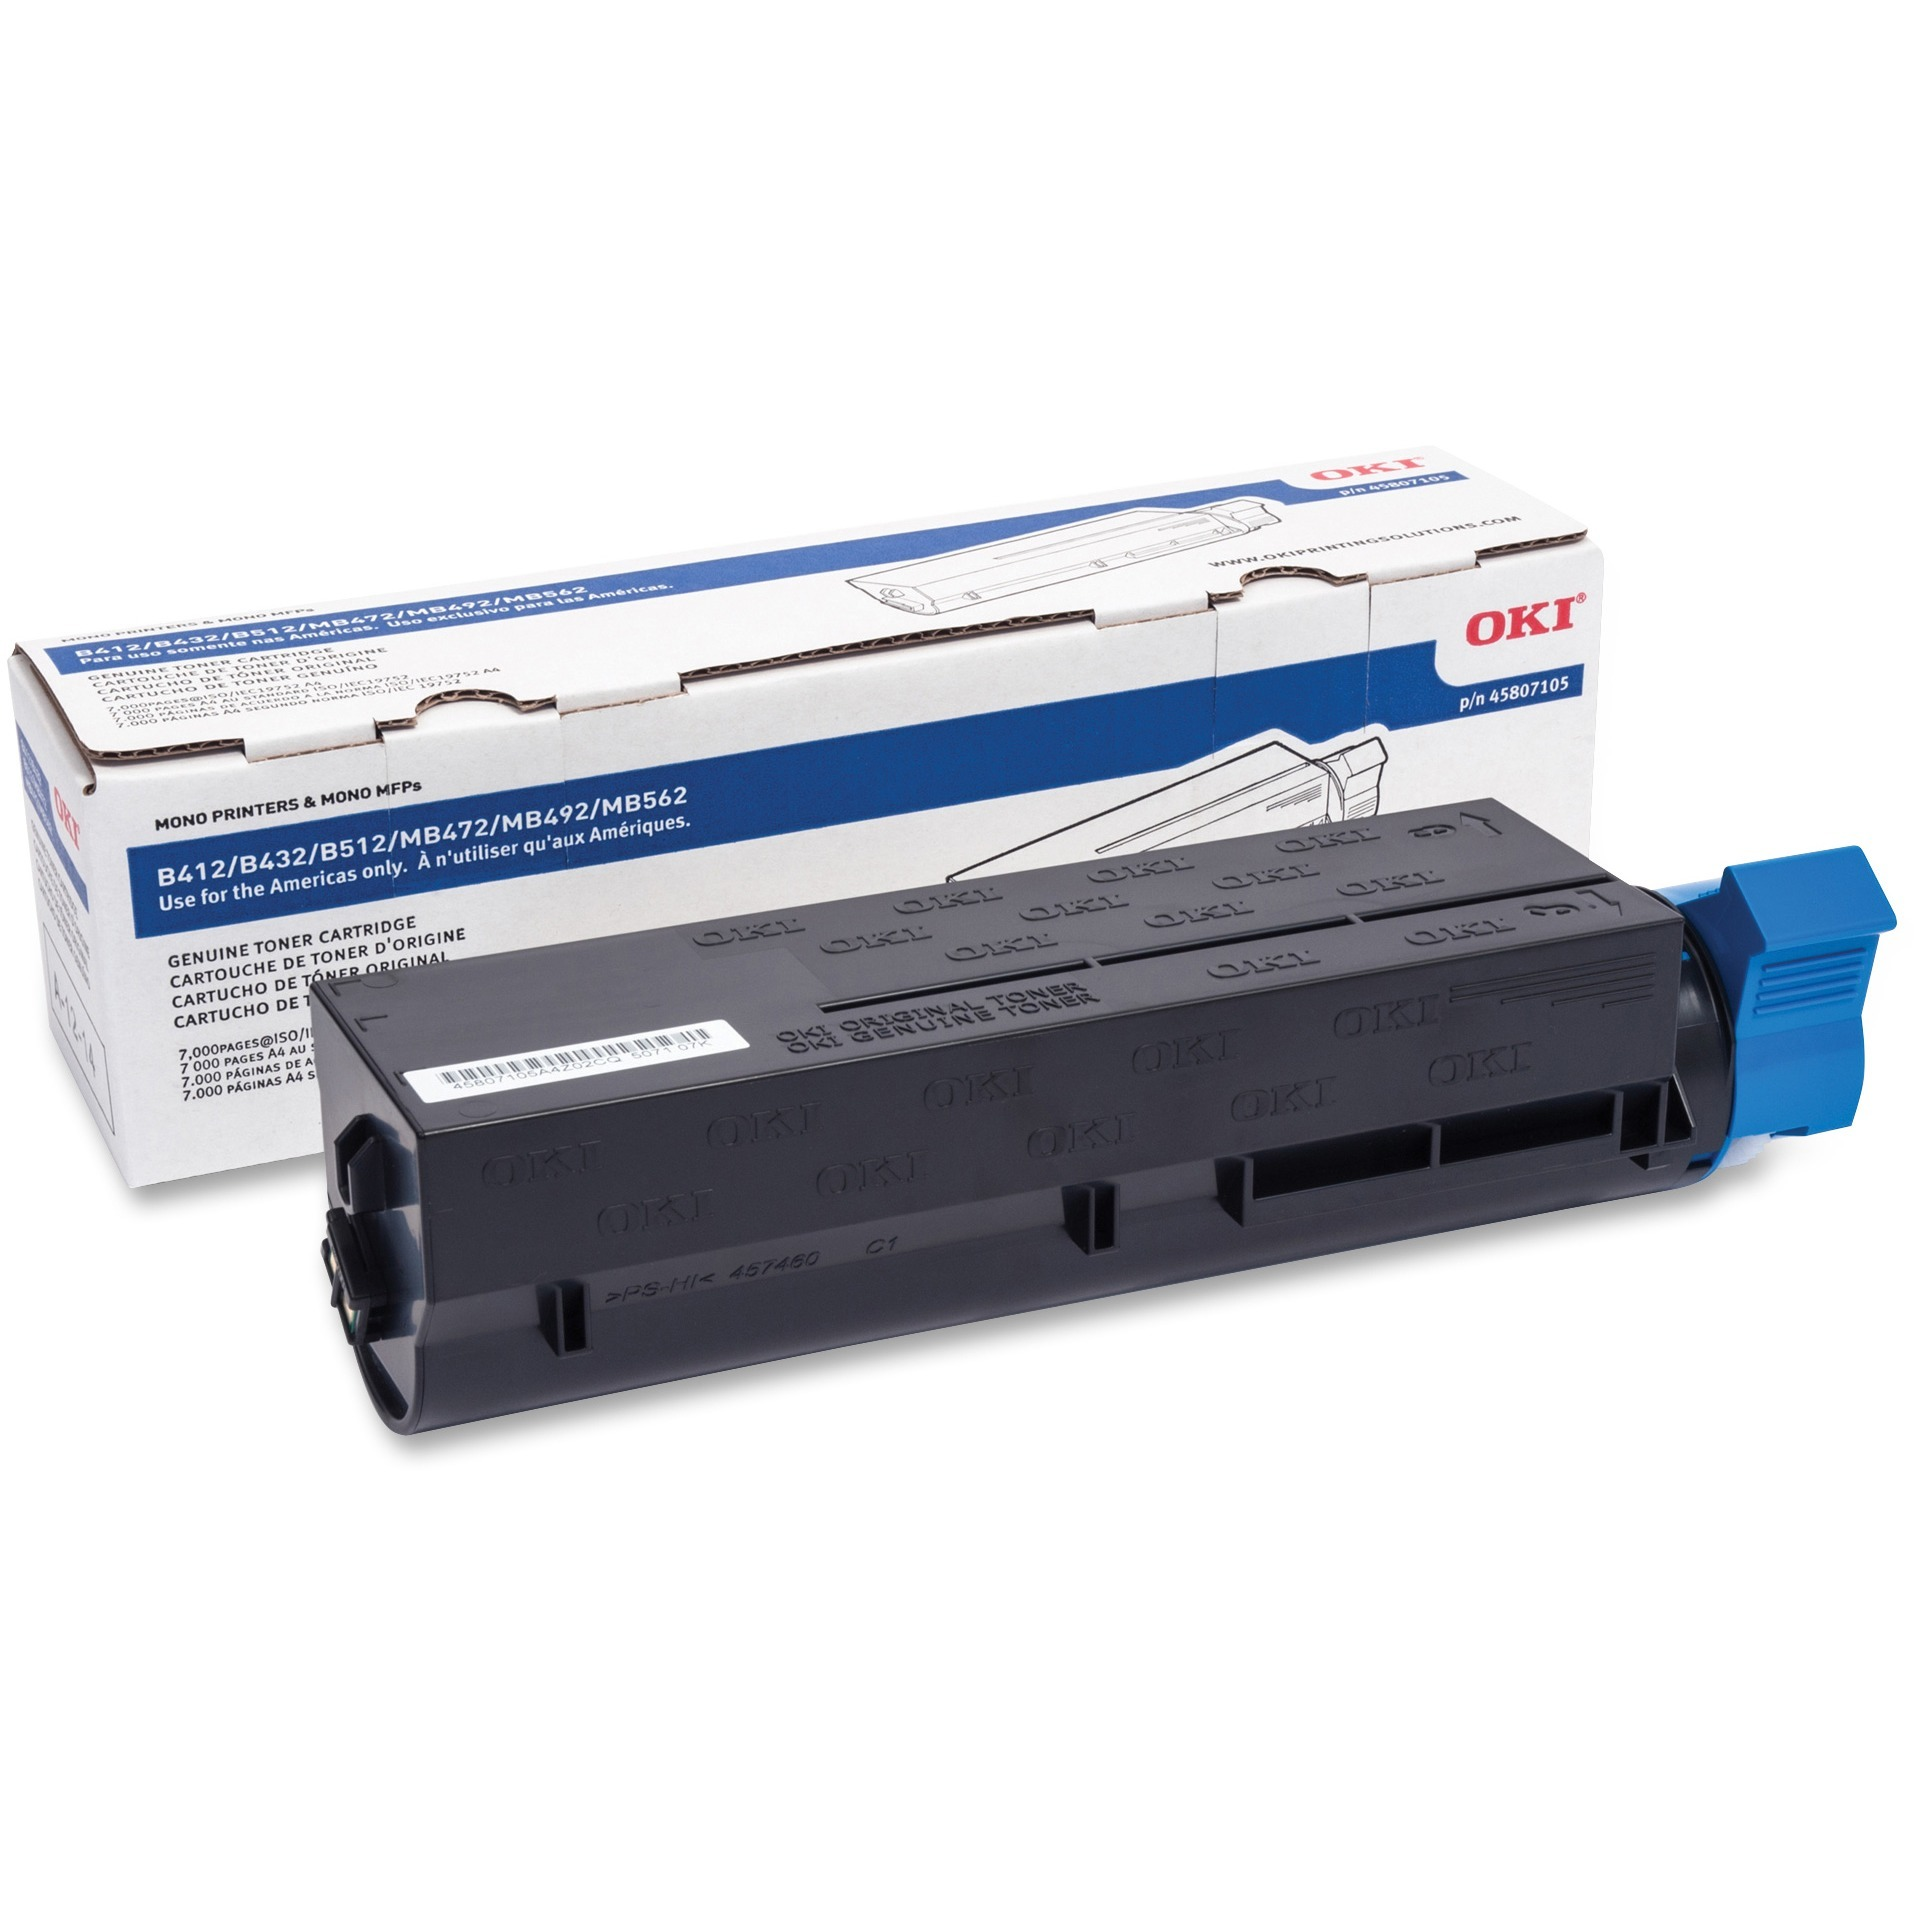 Oki Original Toner Cartridge, 1 Each (Quantity)